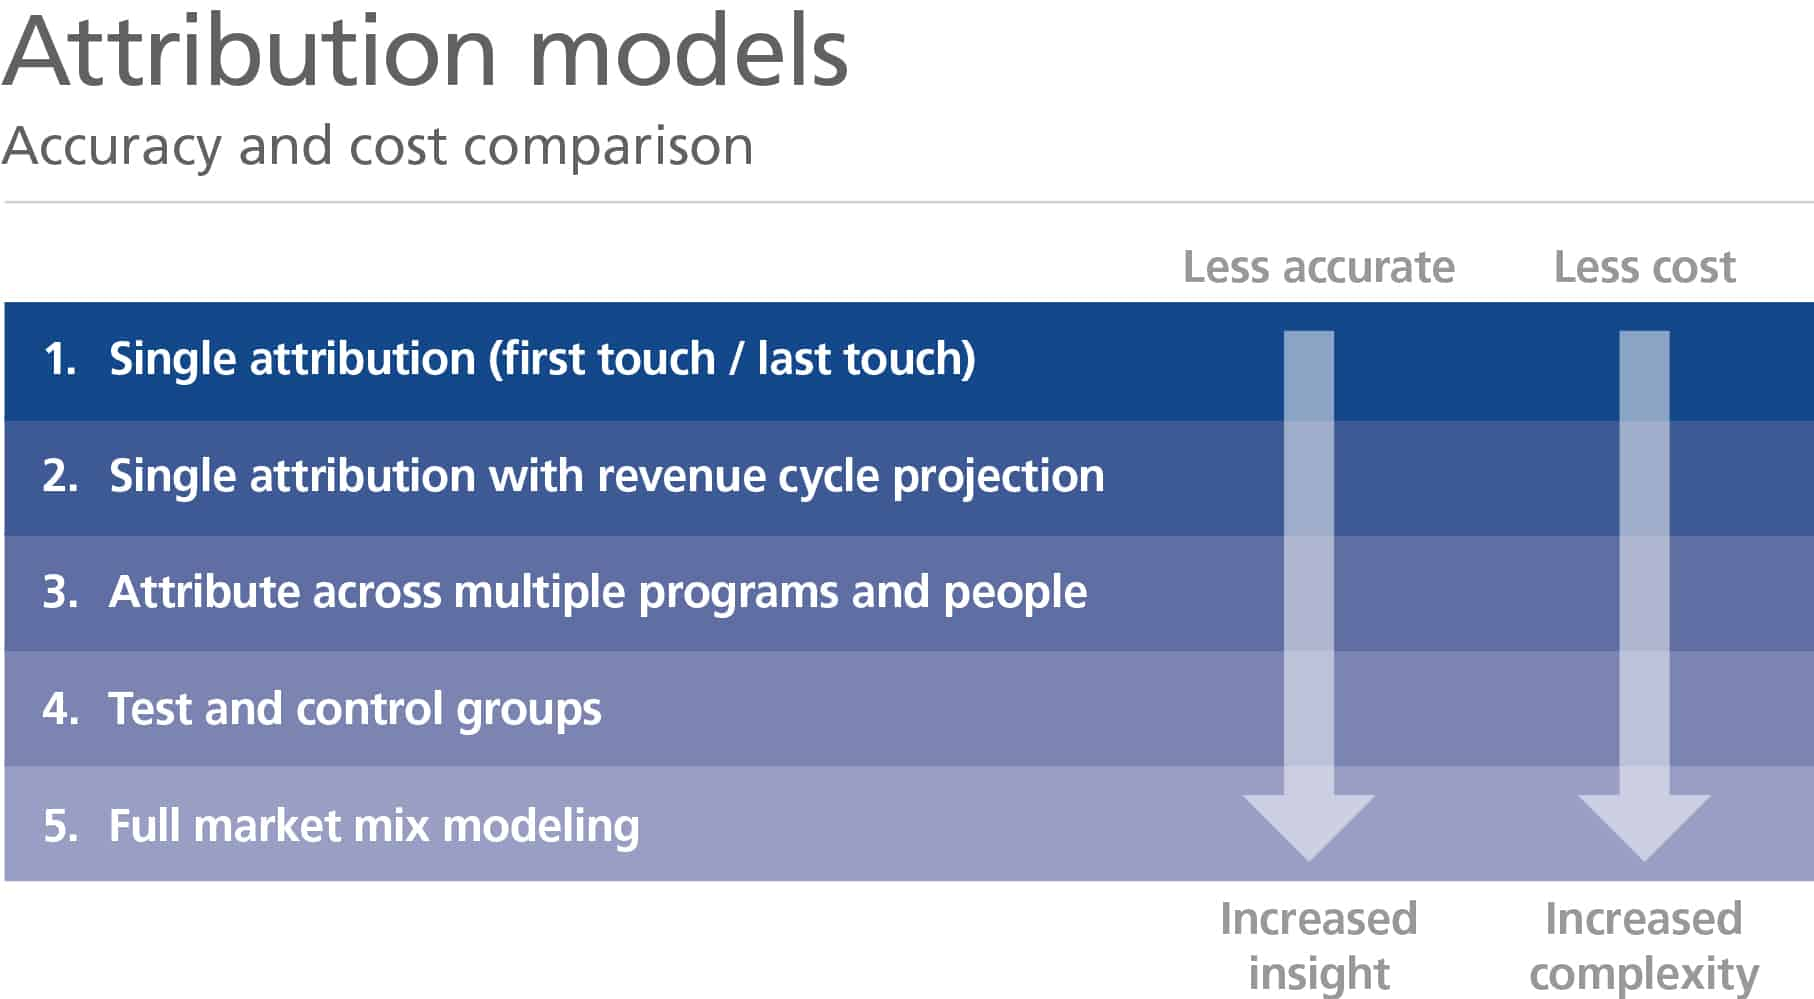 Accuracy and cost comparison of the different attribution models. Full market mix modeling has the most accuracy, but also increased accuracy.